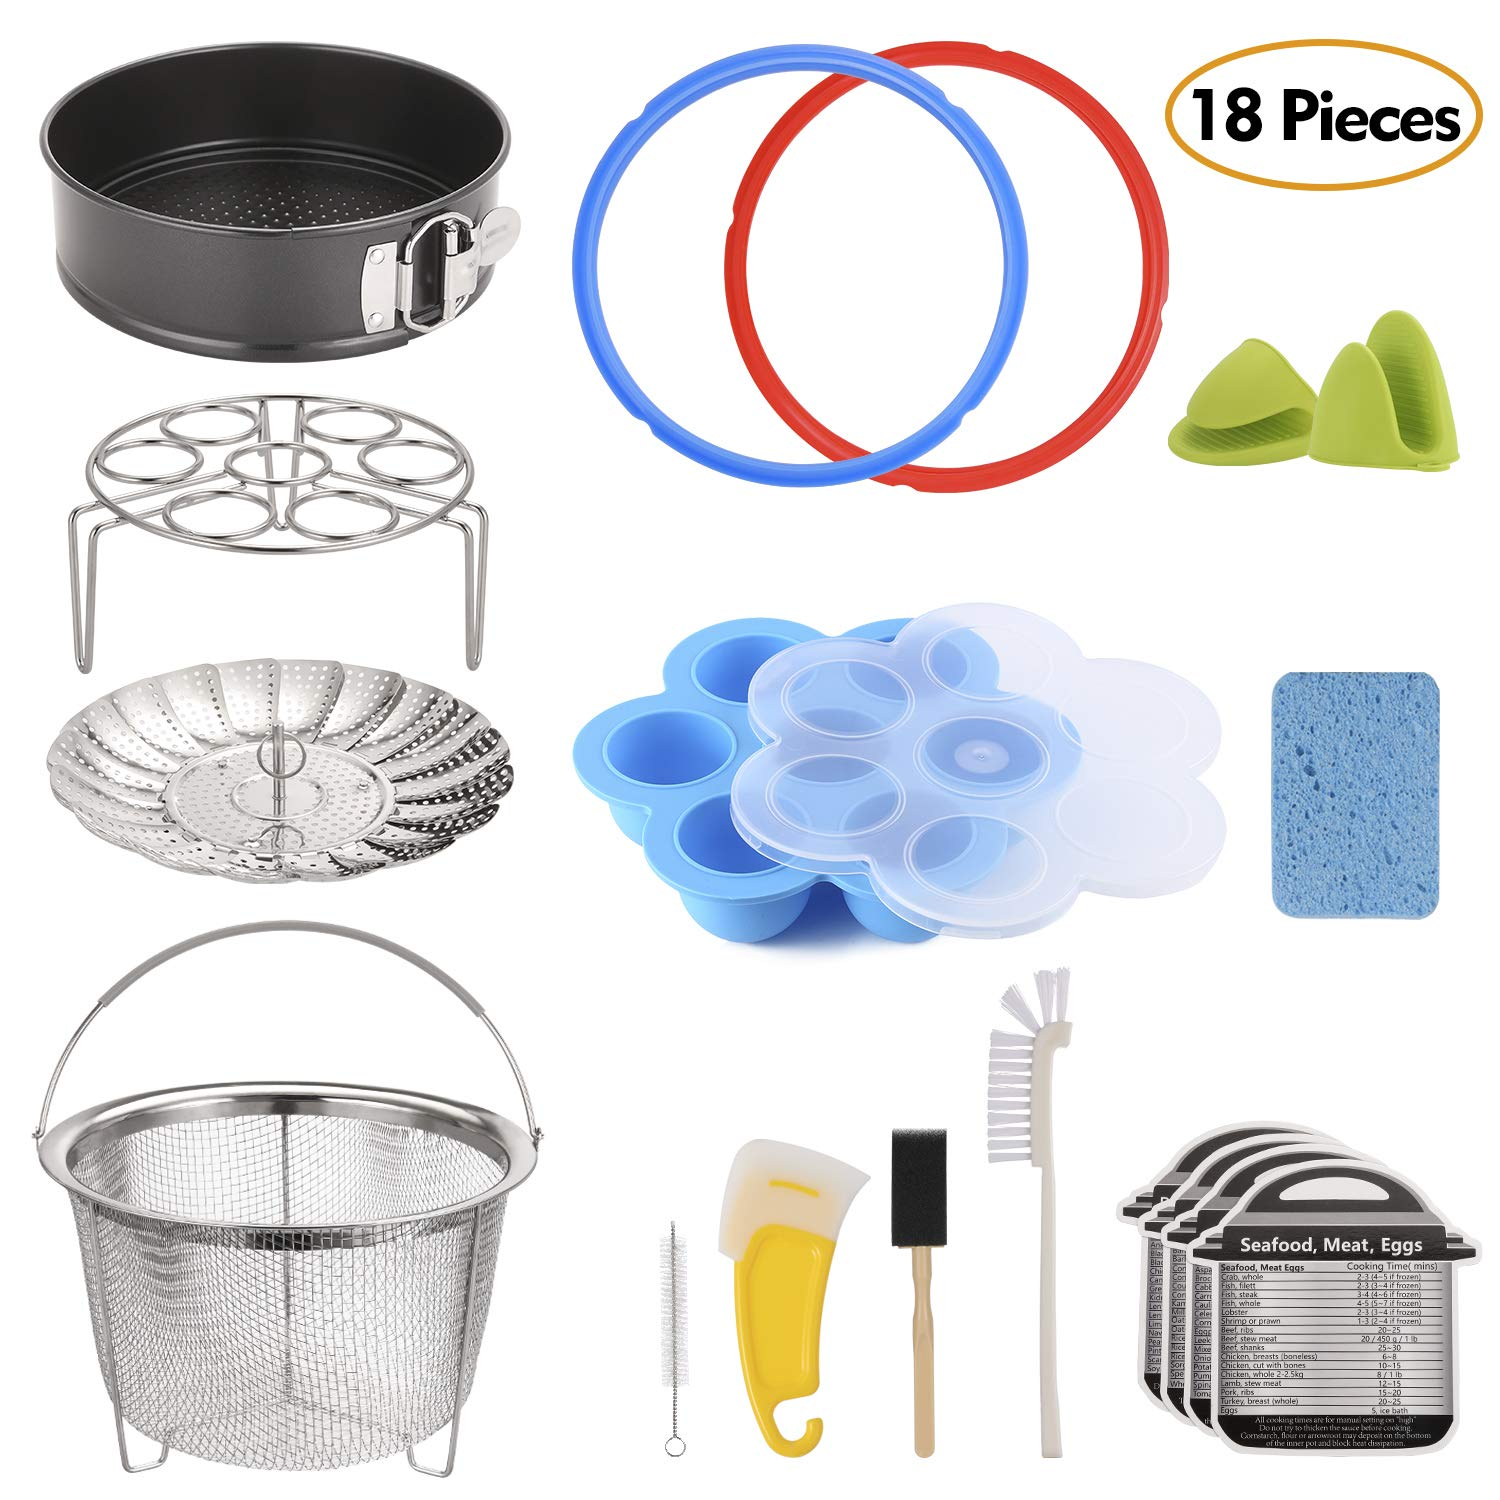 18-Piece Pressure Cooker Accessories Set for Instant Pot 6 Qt, Steamer Basket, Nonstick Springform Pan, Egg Steam Rack, Egg Bites Mold, Mini Mitt, Sealing Rings, Magnetic Cheat Sheets, Cleaning Set by Aozita